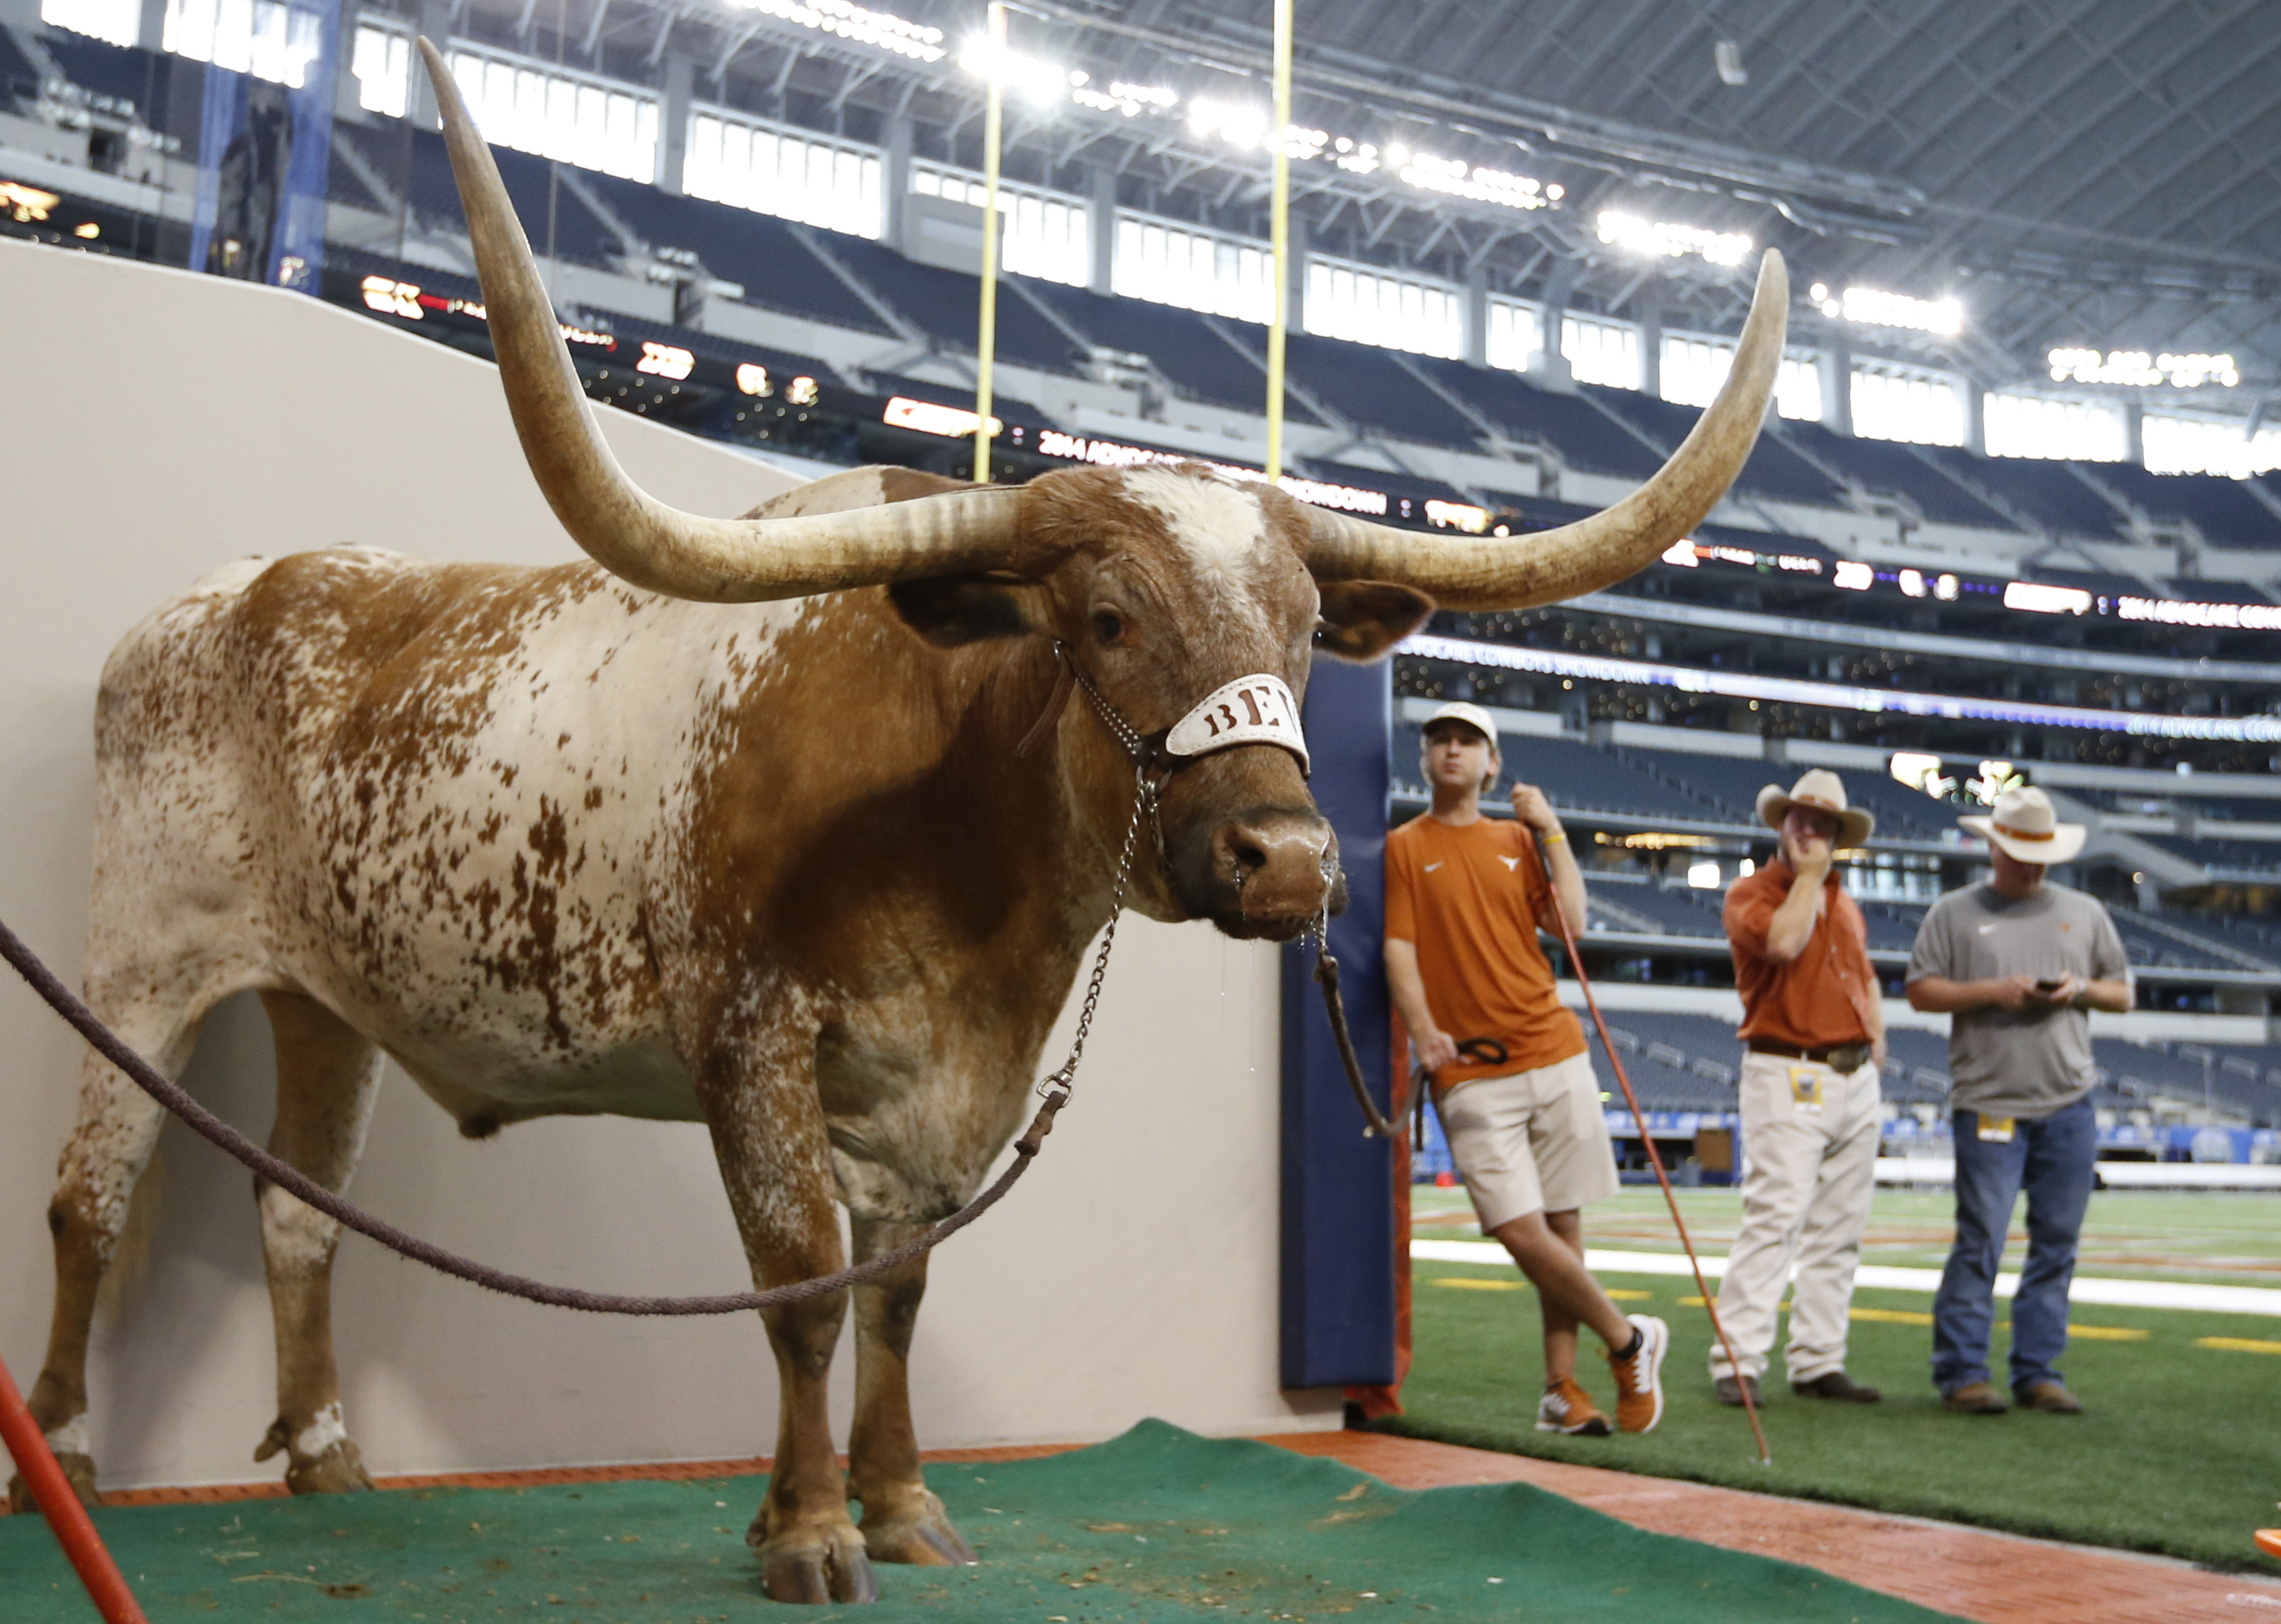 Sep 13, 2014; Arlington, TX, USA; Texas Longhorns mascot Bevo XIV prior to the game against the UCLA Bruins at AT&T Stadium. (Matthew Emmons-USA TODAY Sports)